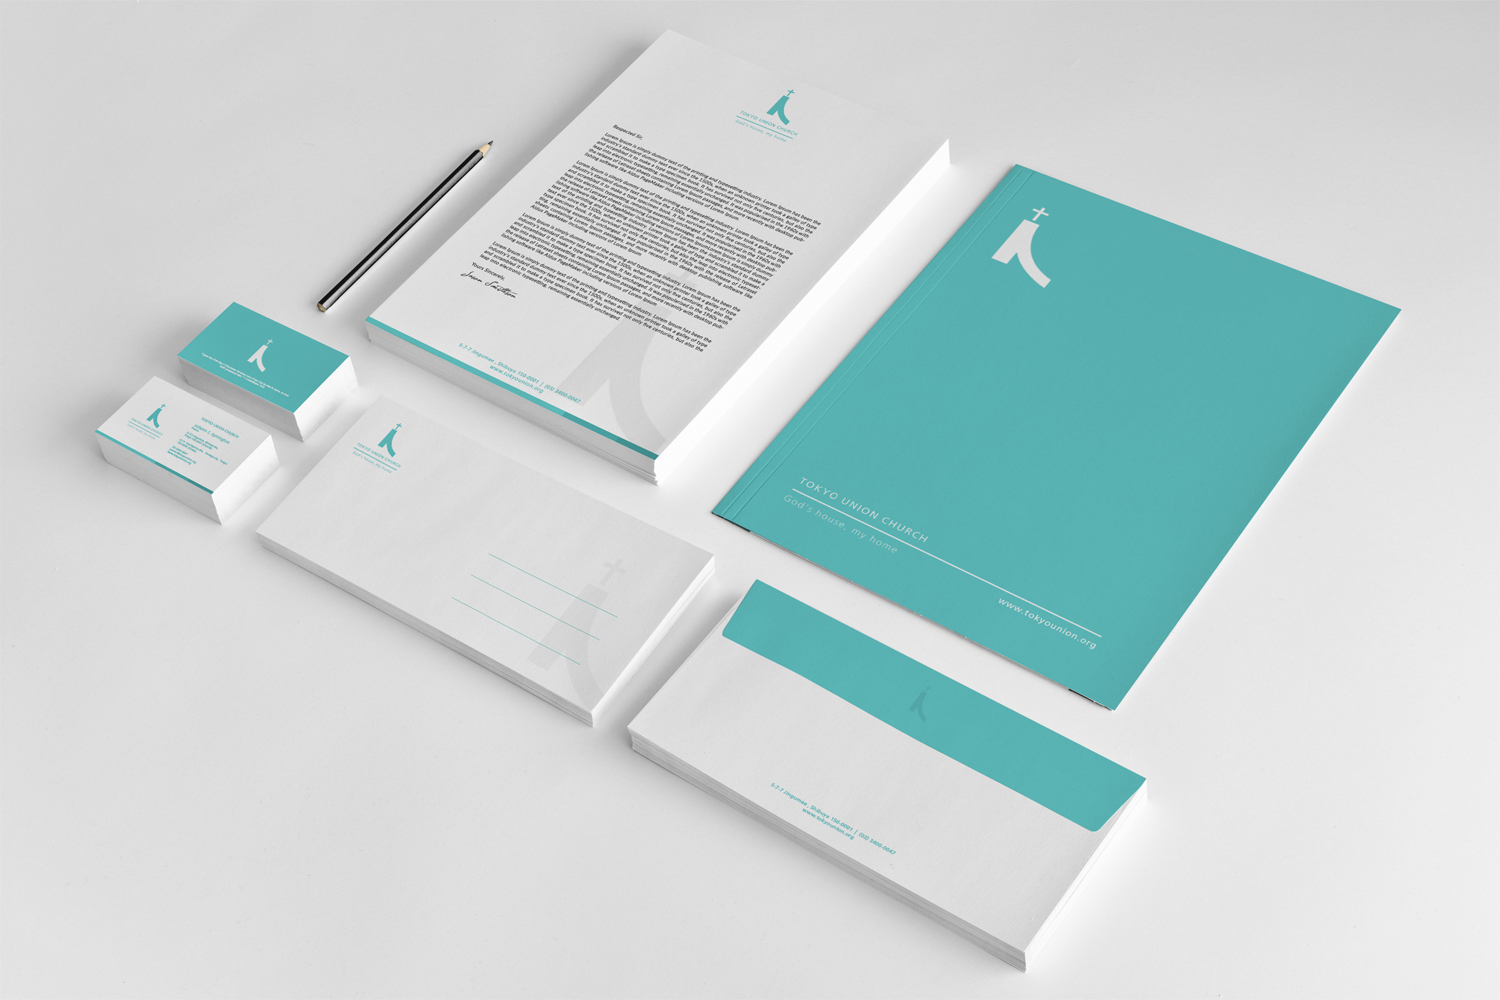 Turquoise Minimal Corporate Stationary Design